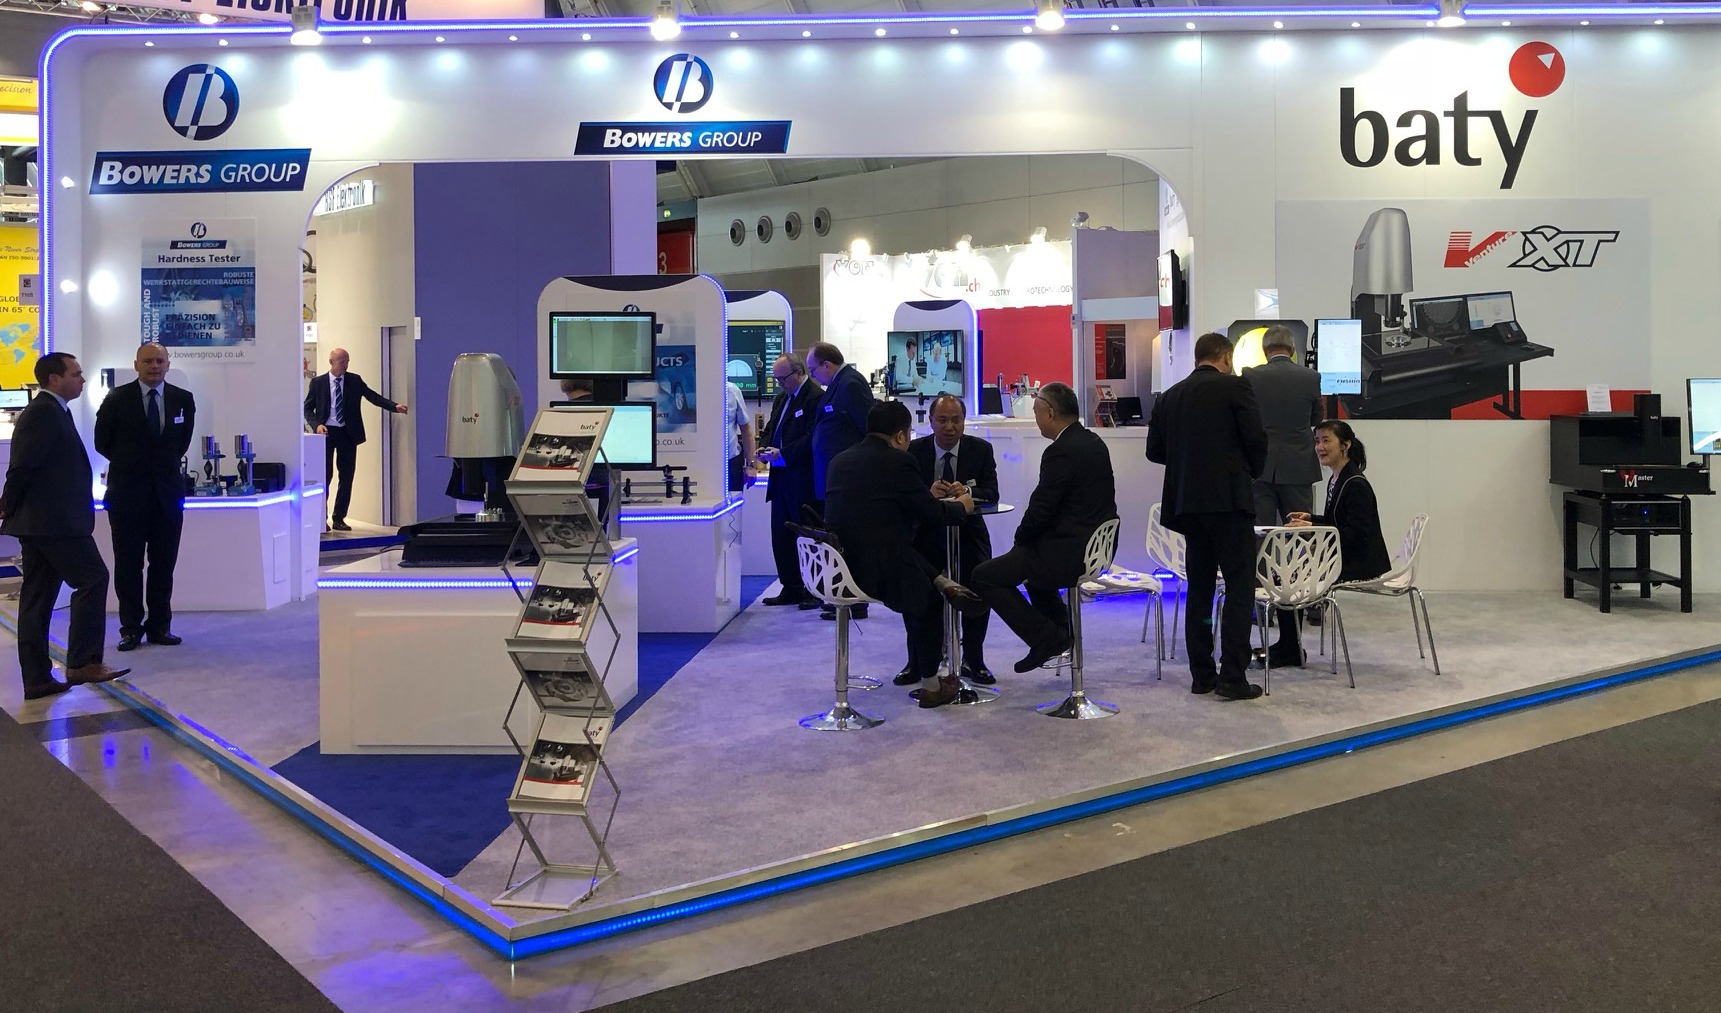 Bowers Group stand at Control Exhibition